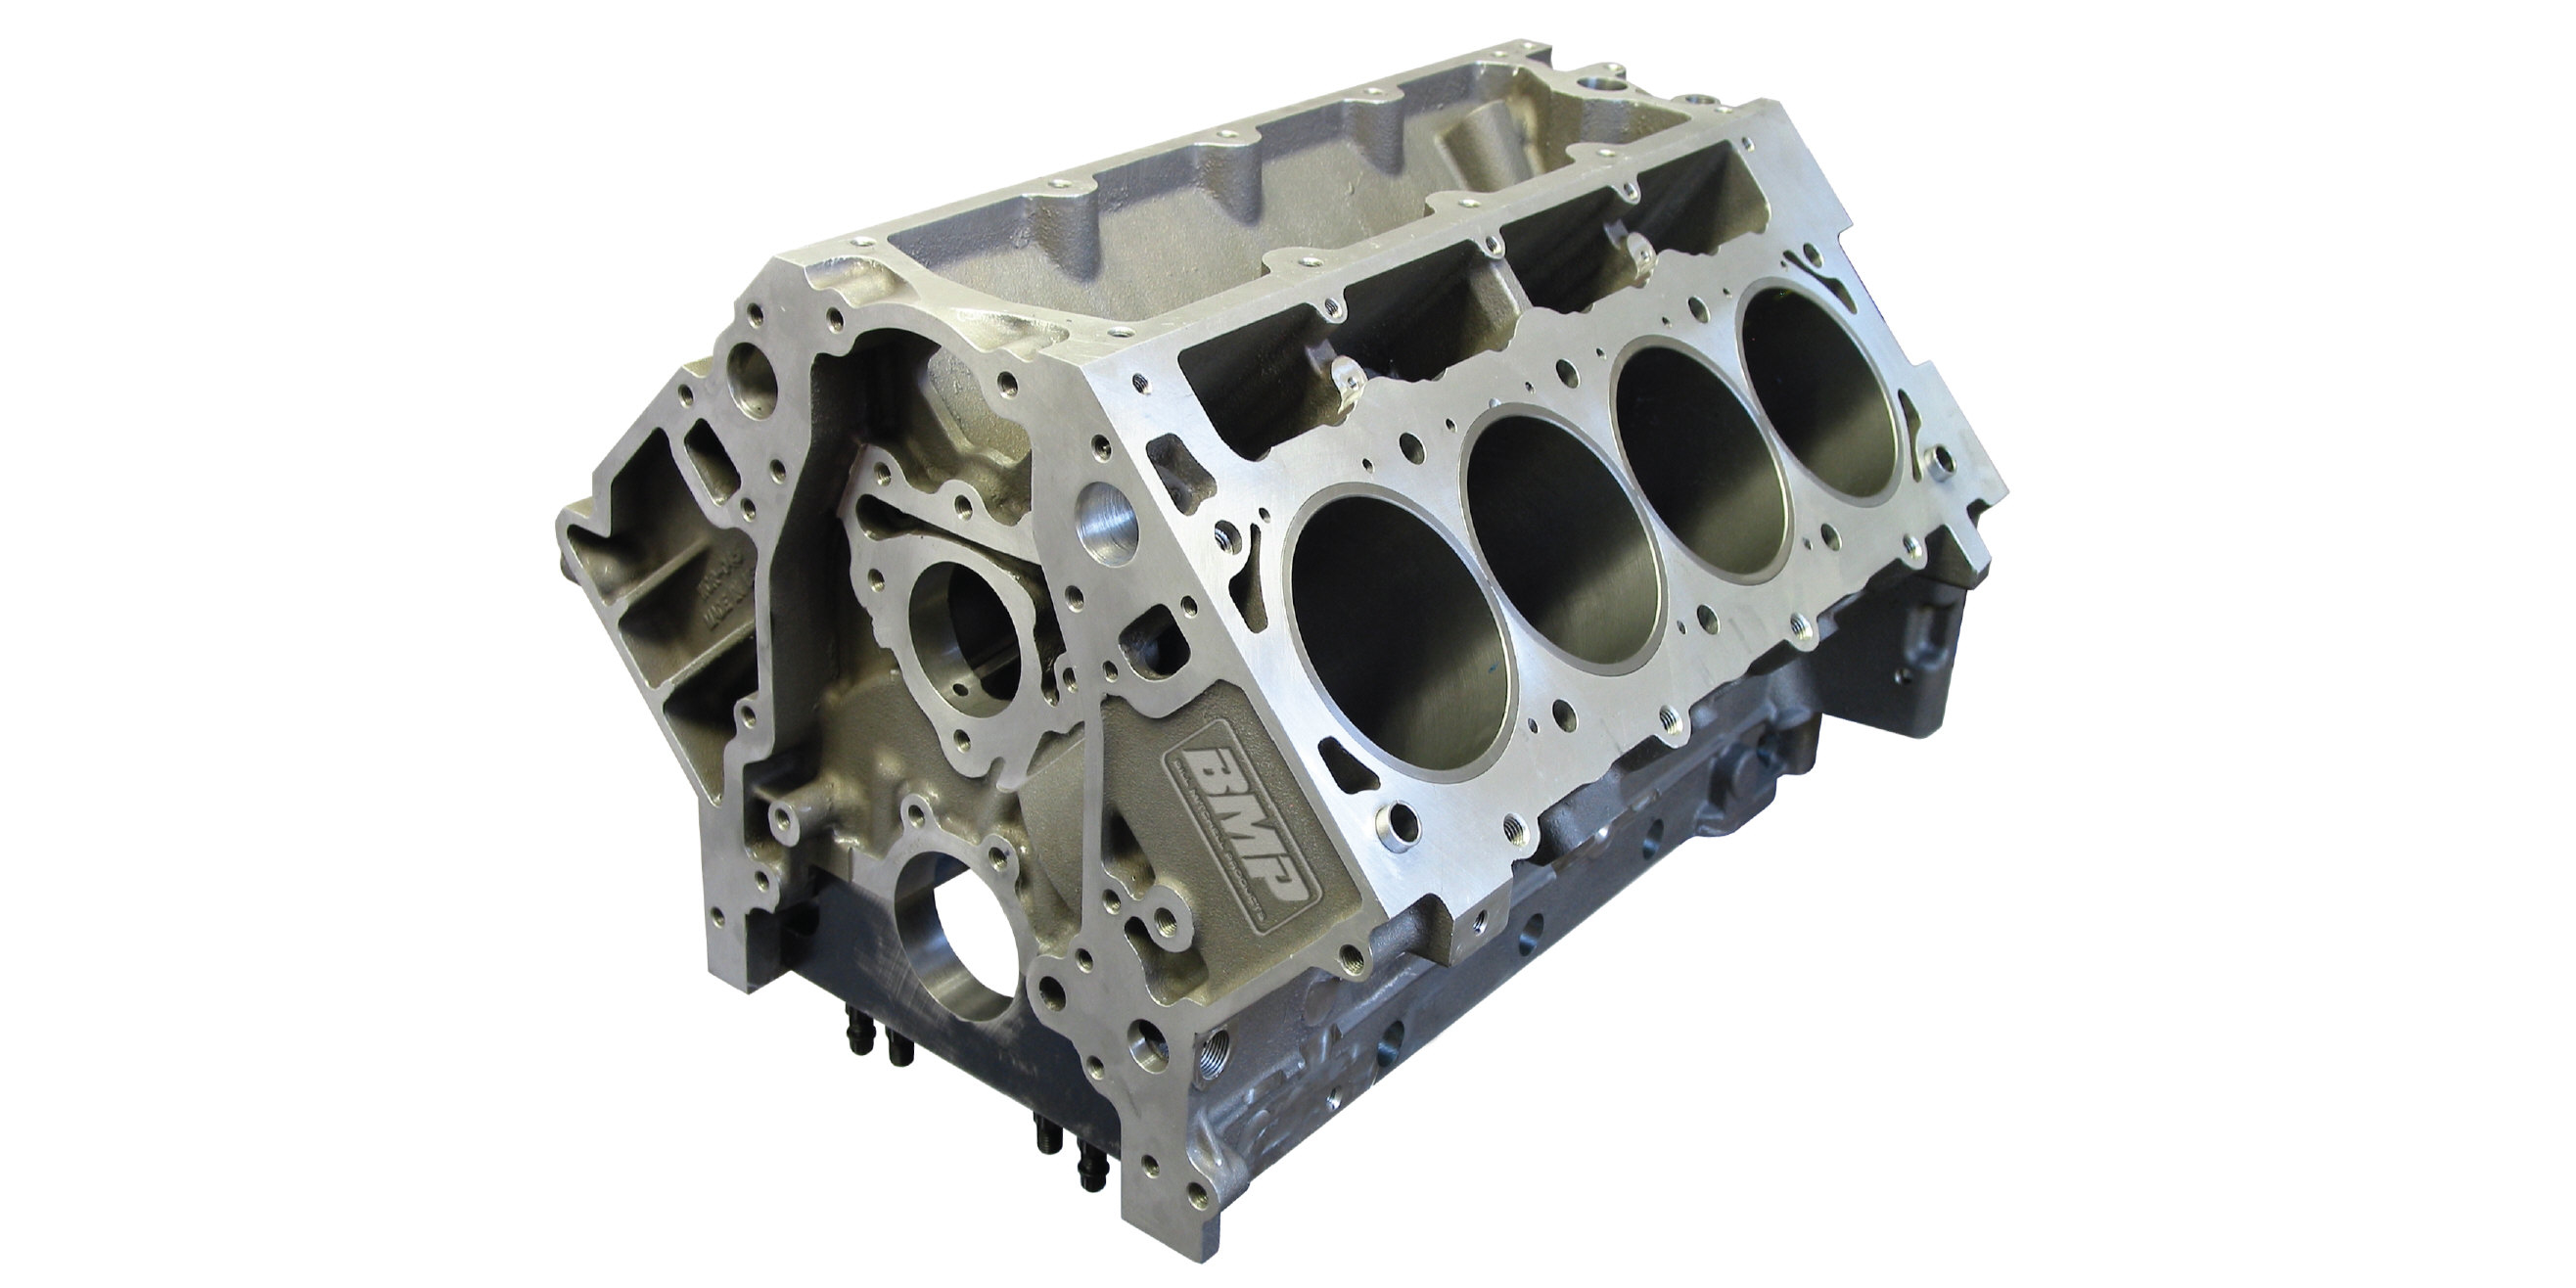 Machining Aluminum Engine Blocks - Engine Builder Magazine